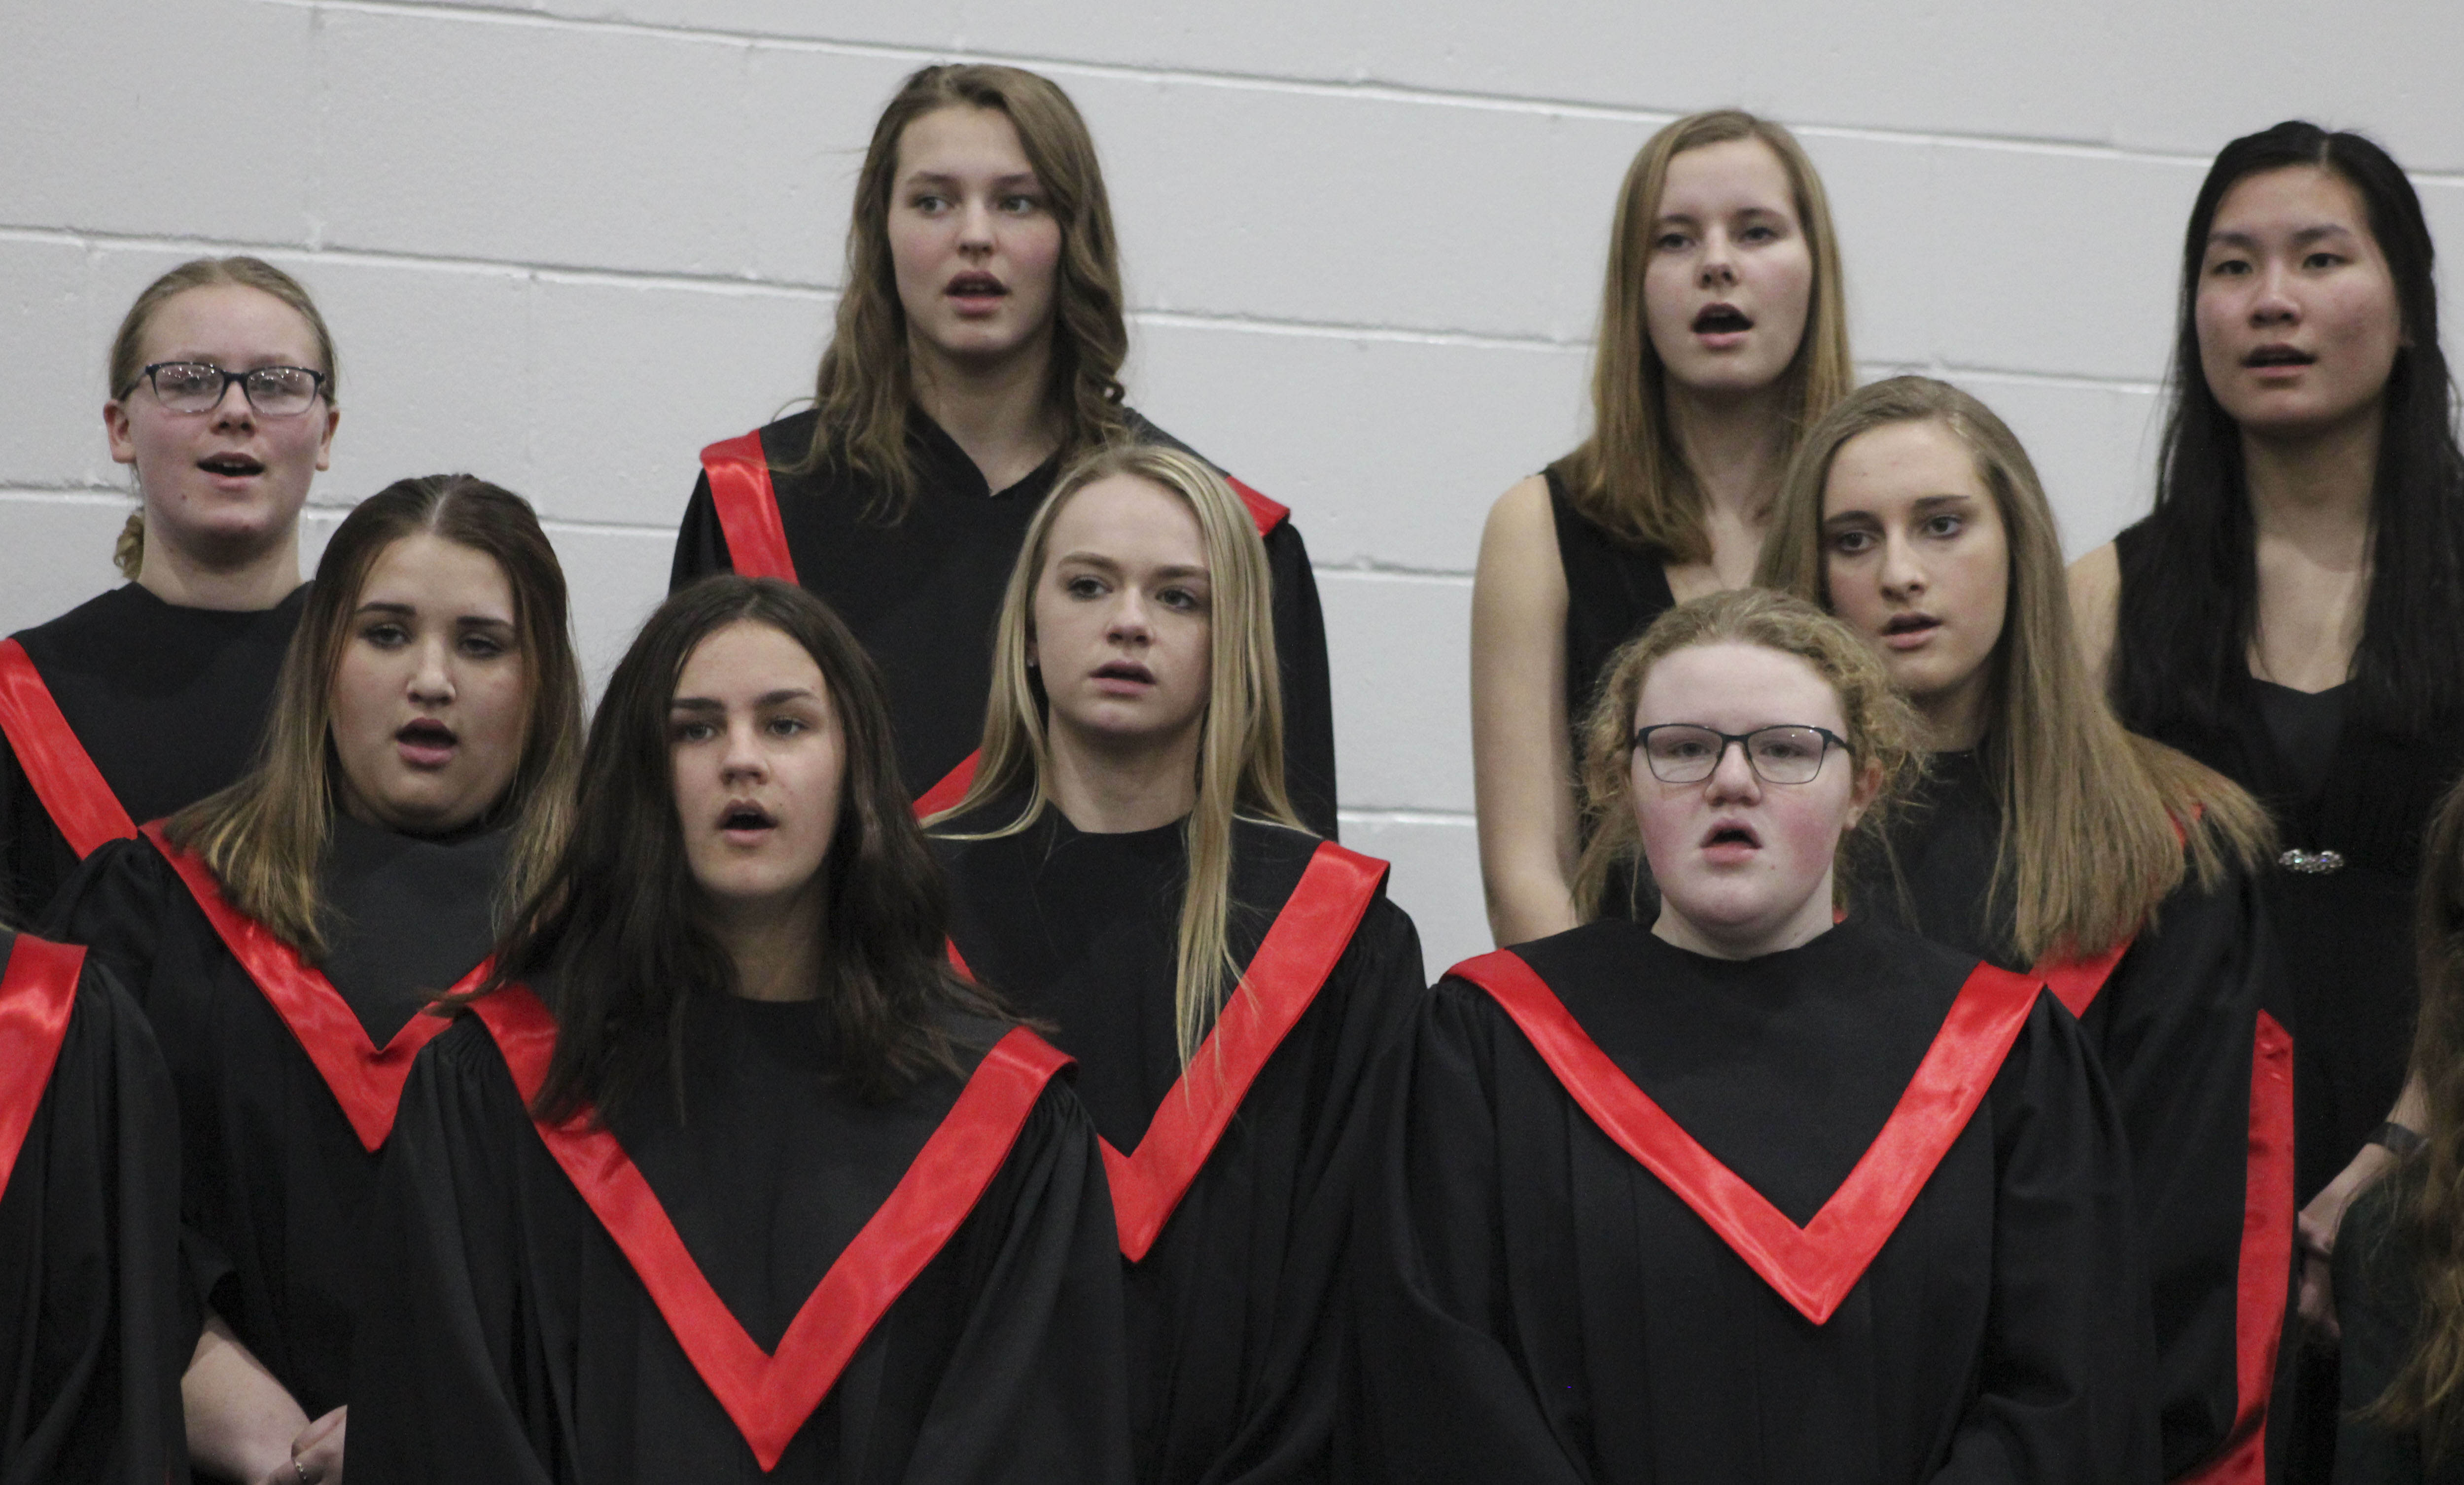 High school vocalists sing at the Grade 7-12 All-Vocal Concert March 14 in the Monticello High School gym. They include, first row from left: Brooklyn Stark and Mary Schmit. Second row from left; Ami Schwendinger, Kelsey Adams and Kayla Simmons. Third row: Trista DeShaw, Triniti Etzel, Sophia Ahlrichs and Clara Finger. (Photos by Pete Temple)